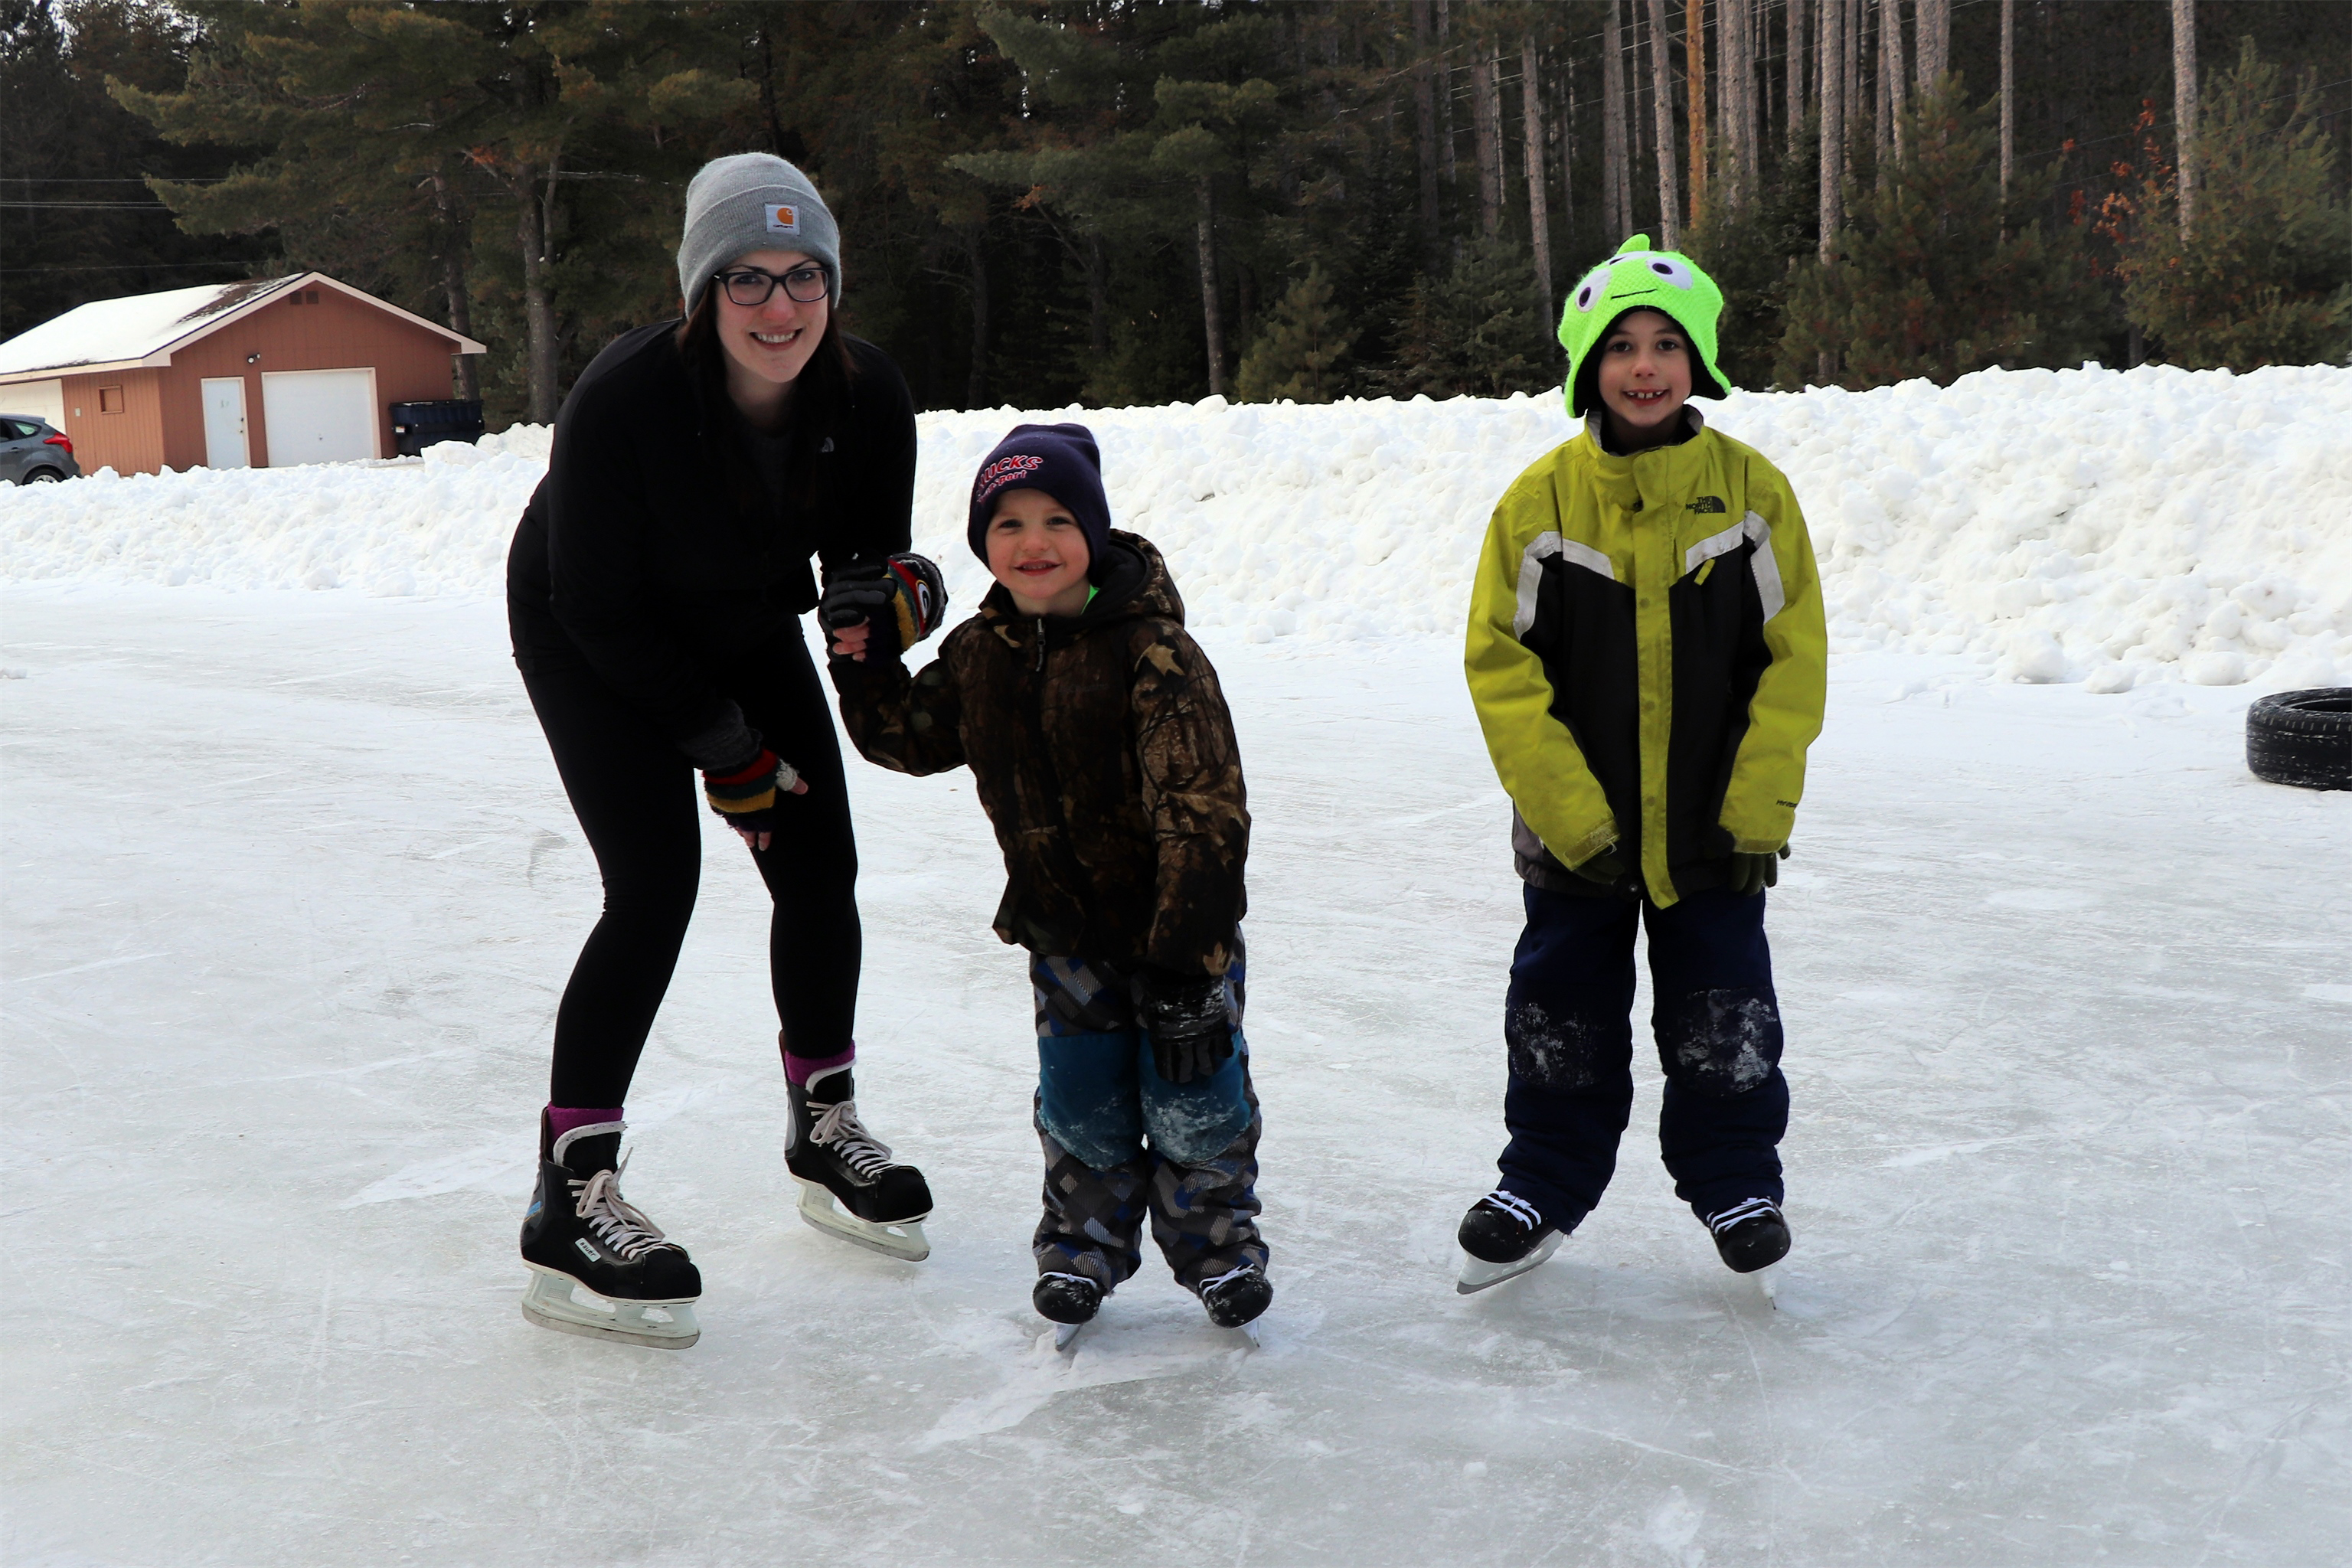 Angela and her boys Elliott and Tristan spend time ice skating at Brandy Park in Woodruff. Kim Johnson photo